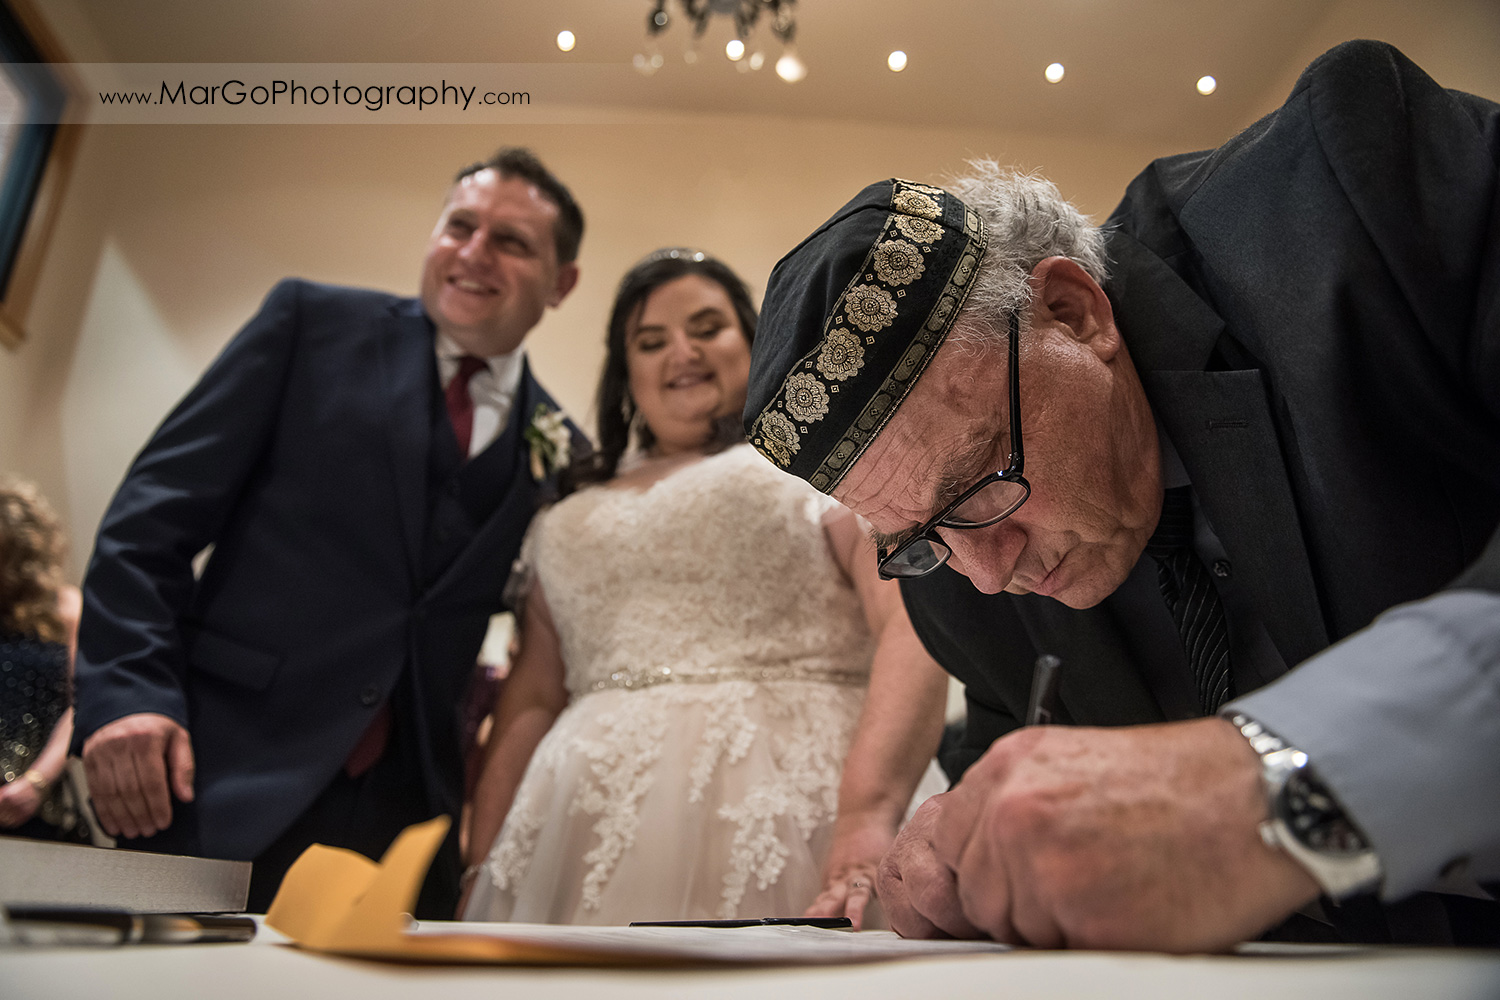 ketubah signing during jewish wedding ceremony at Livermore Garre Vineyard and Winery